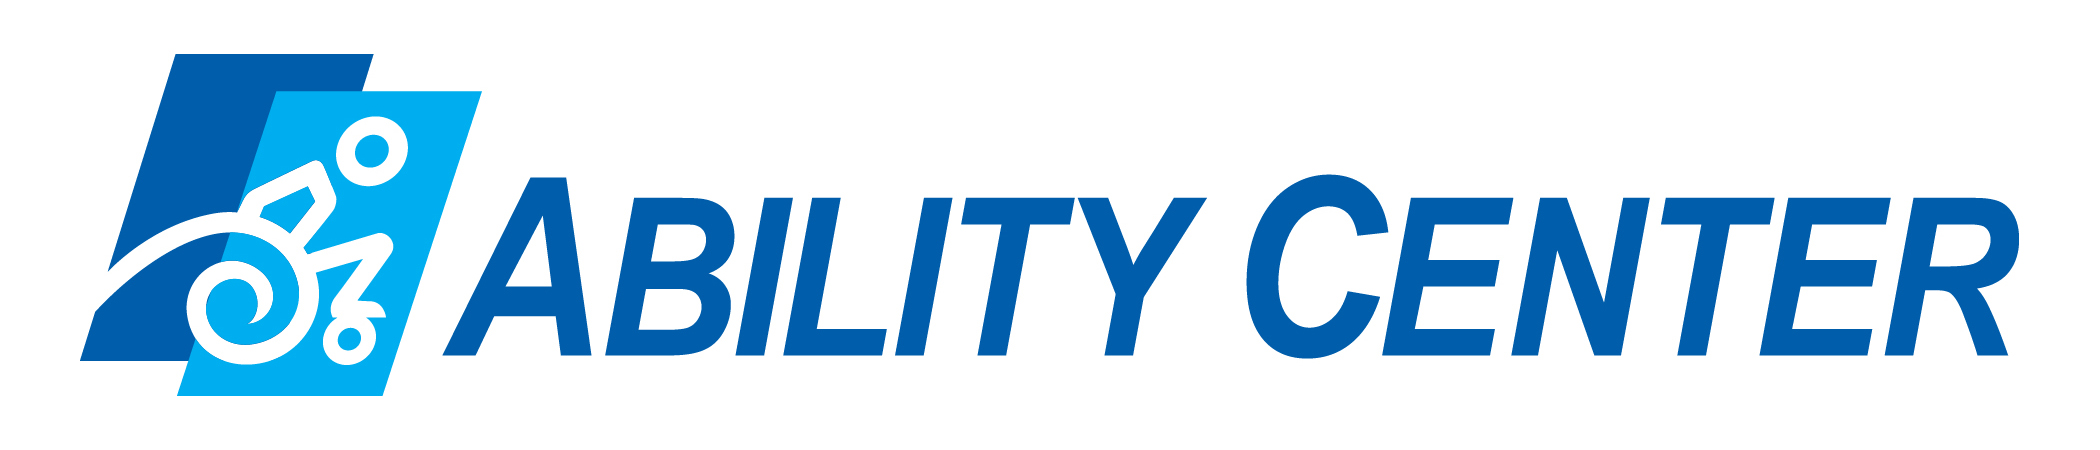 Abilty Center logo